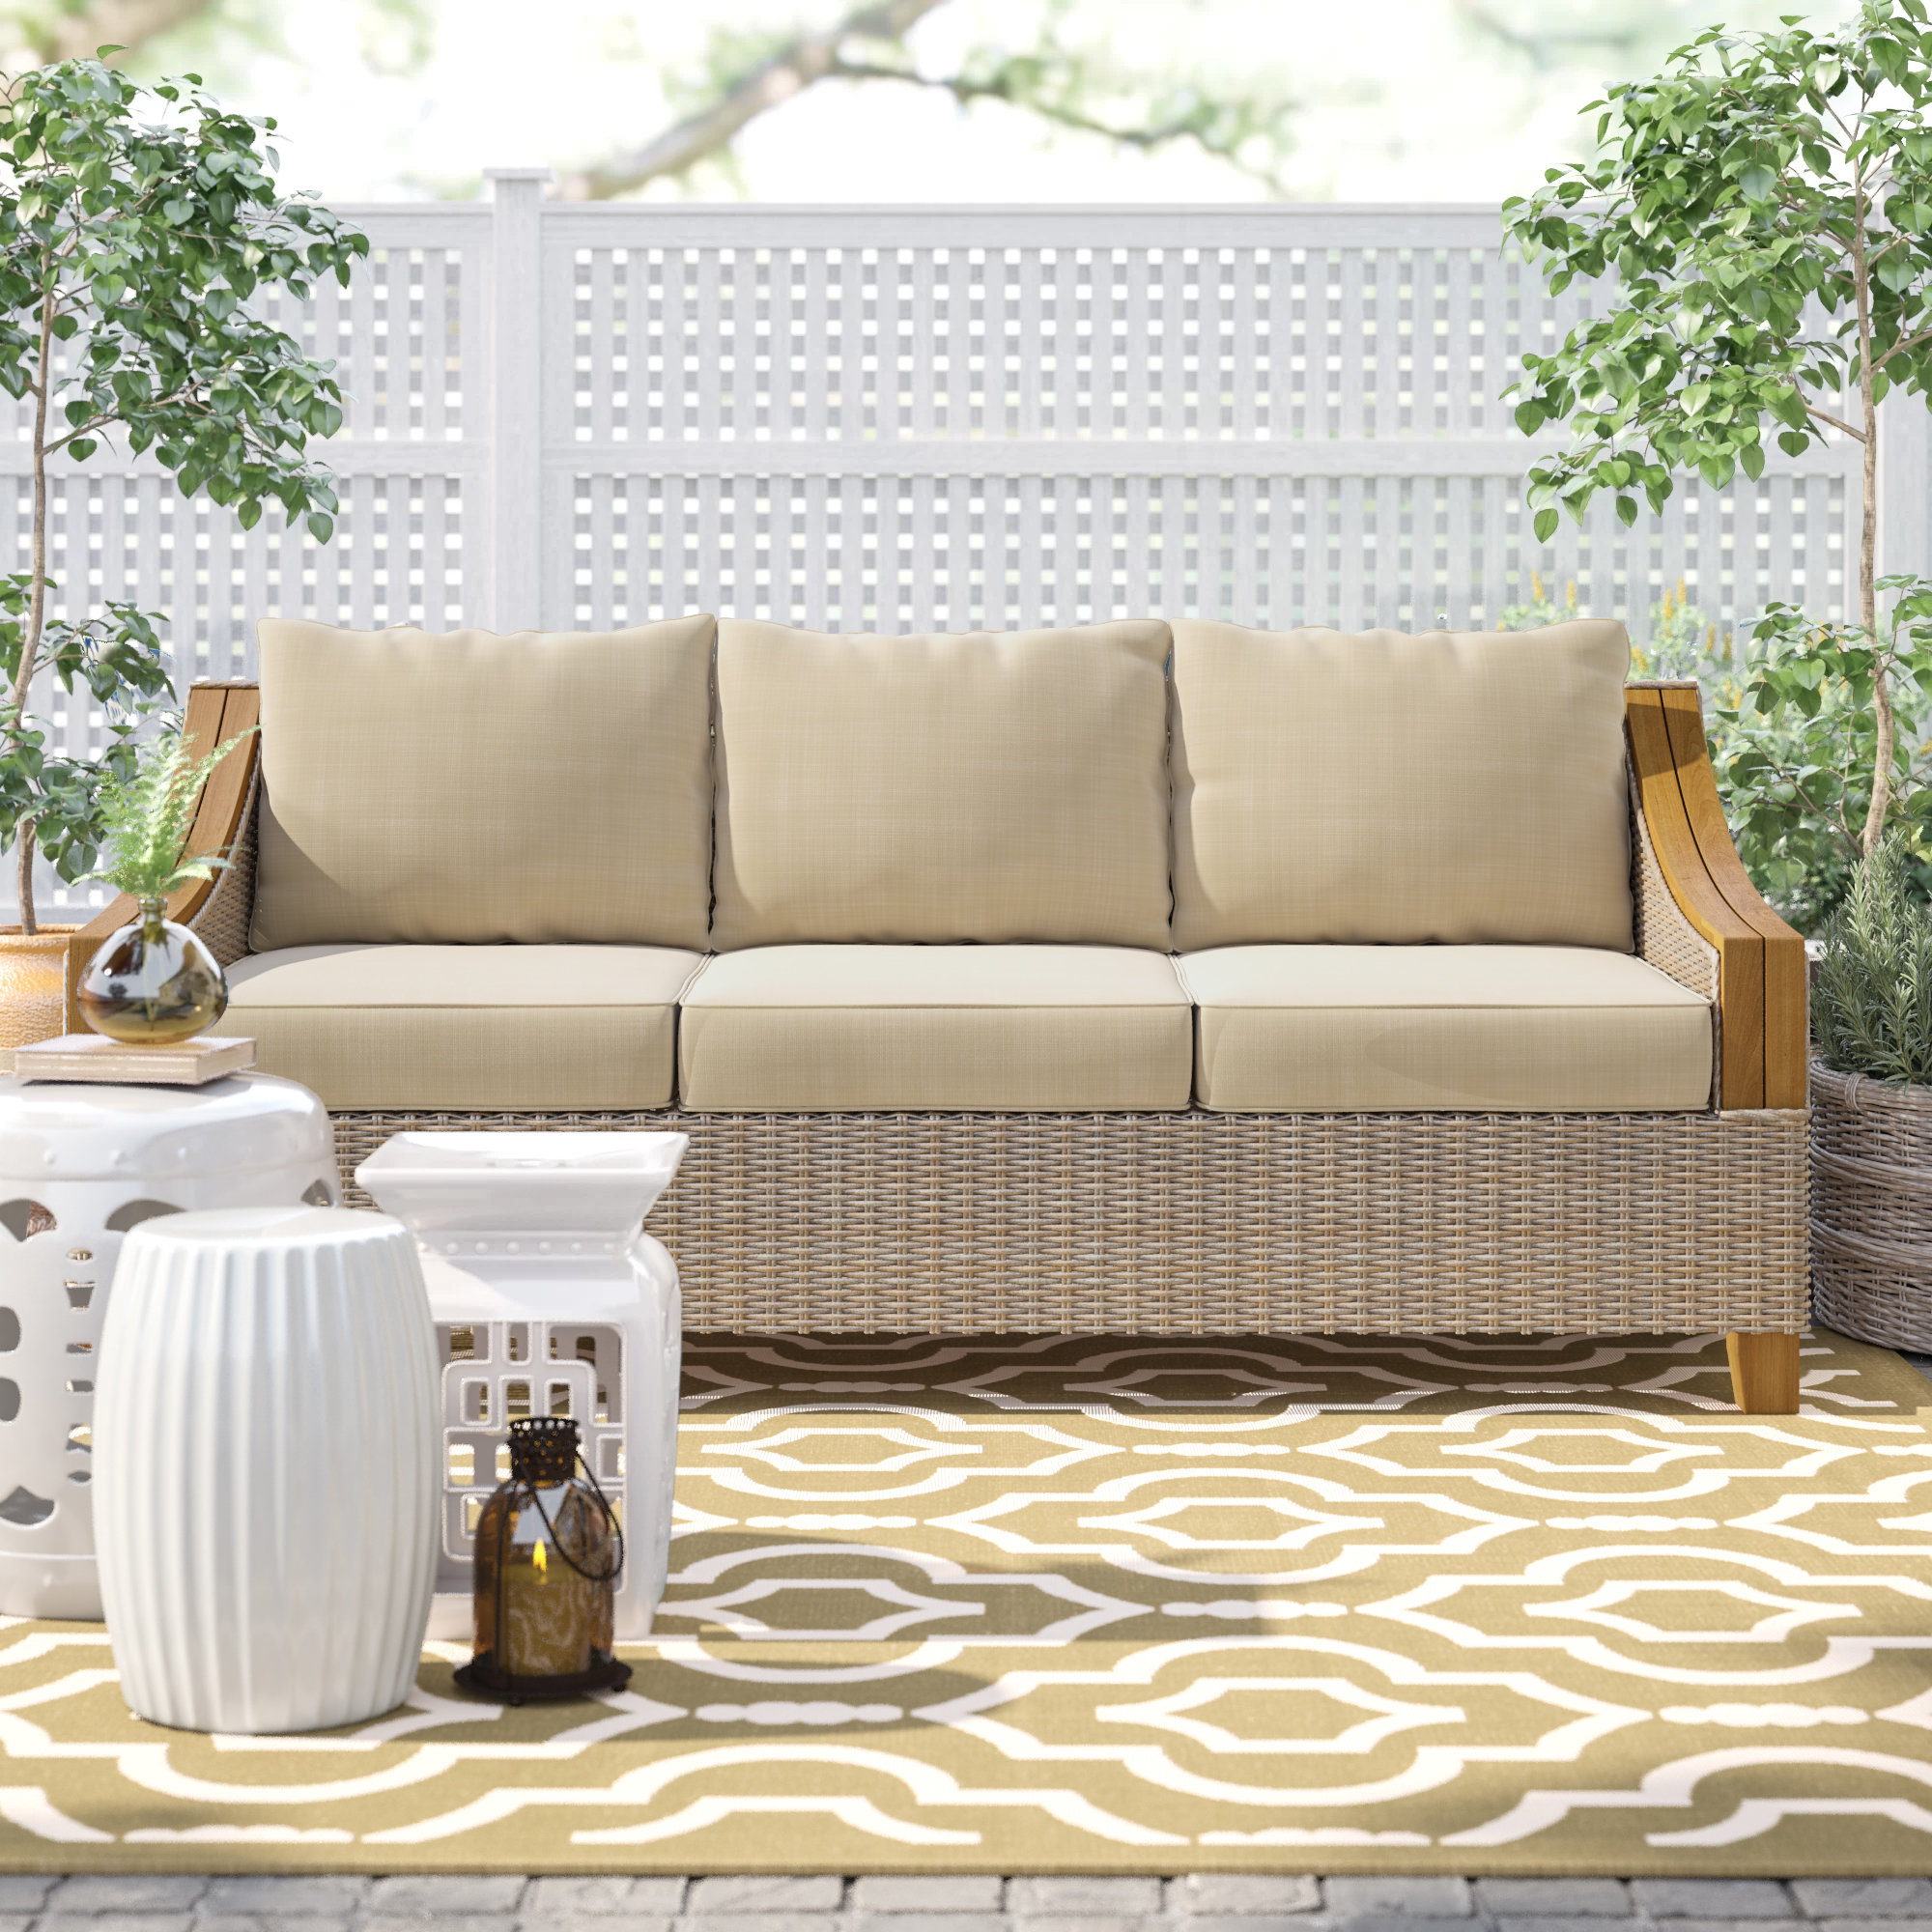 Favorite Kincaid Teak Patio Sofa With Sunbrella Cushions Regarding Lakeland Teak Patio Sofas With Cushions (View 7 of 20)